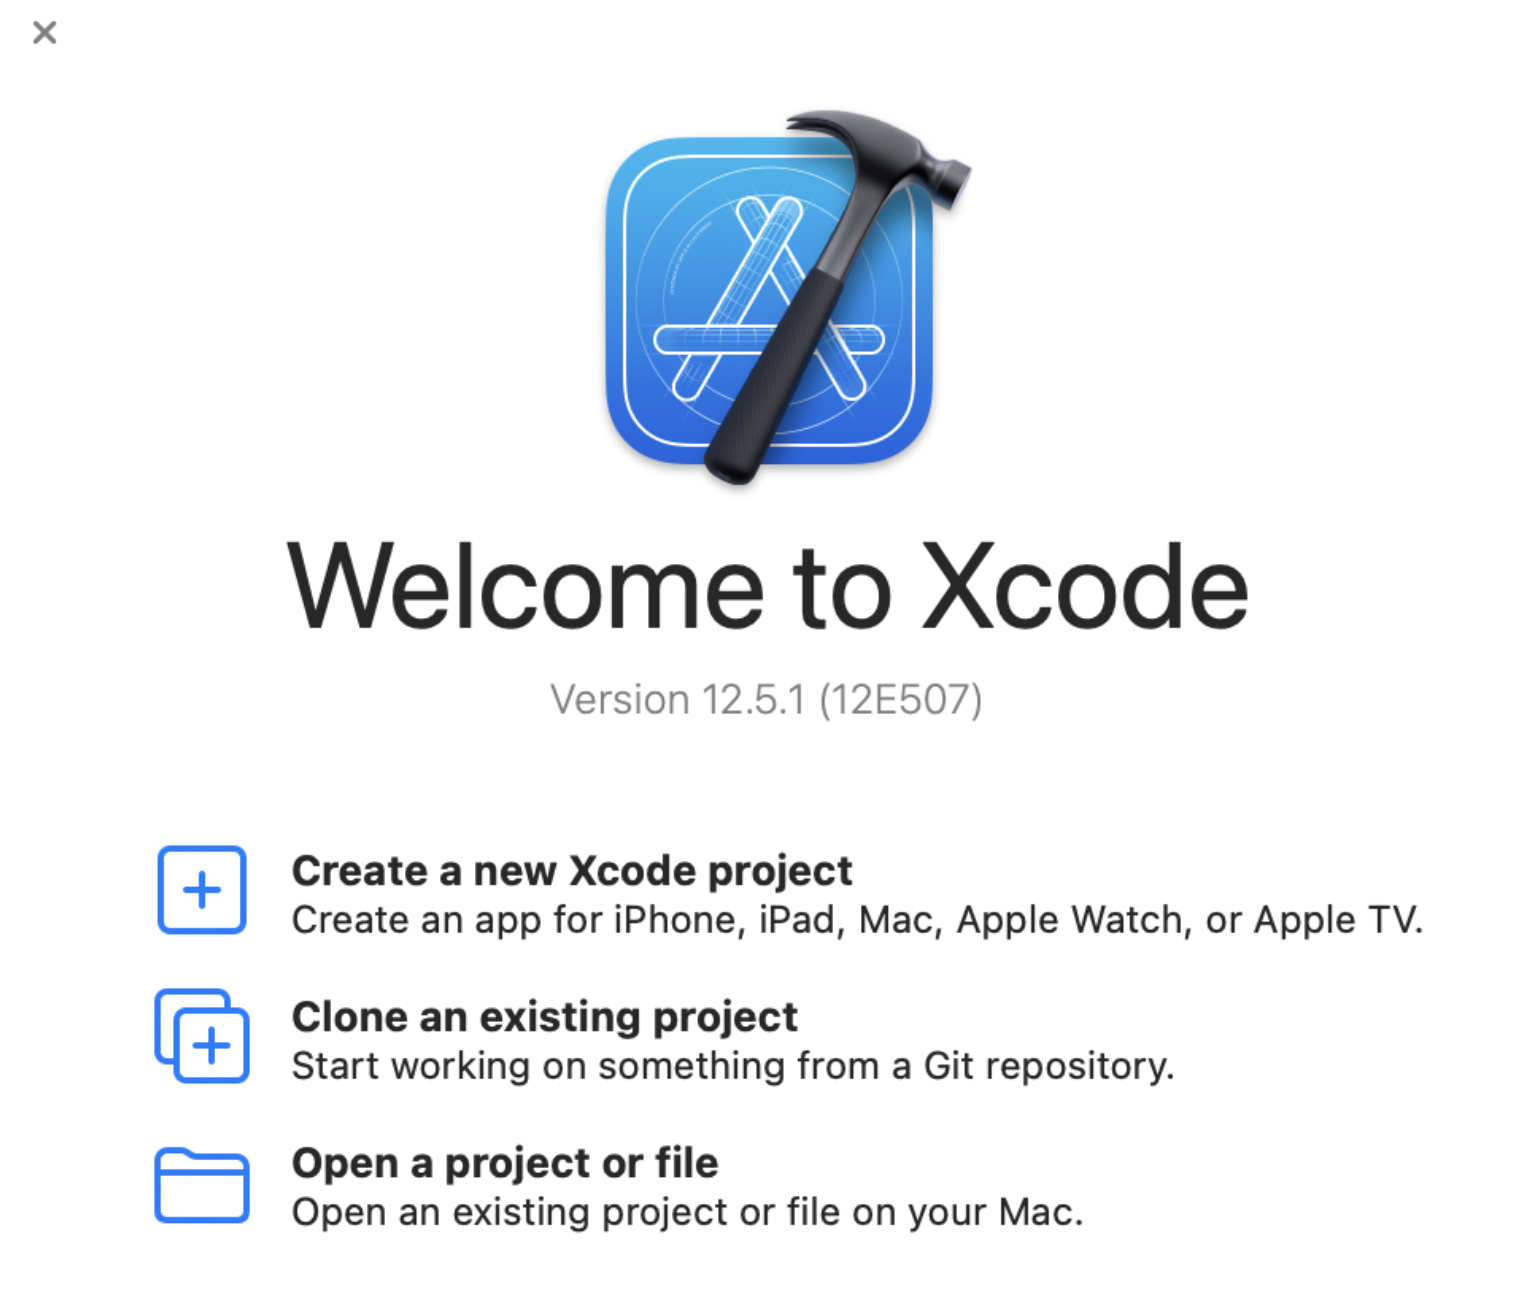 Select **+ Create new Xcode project**.